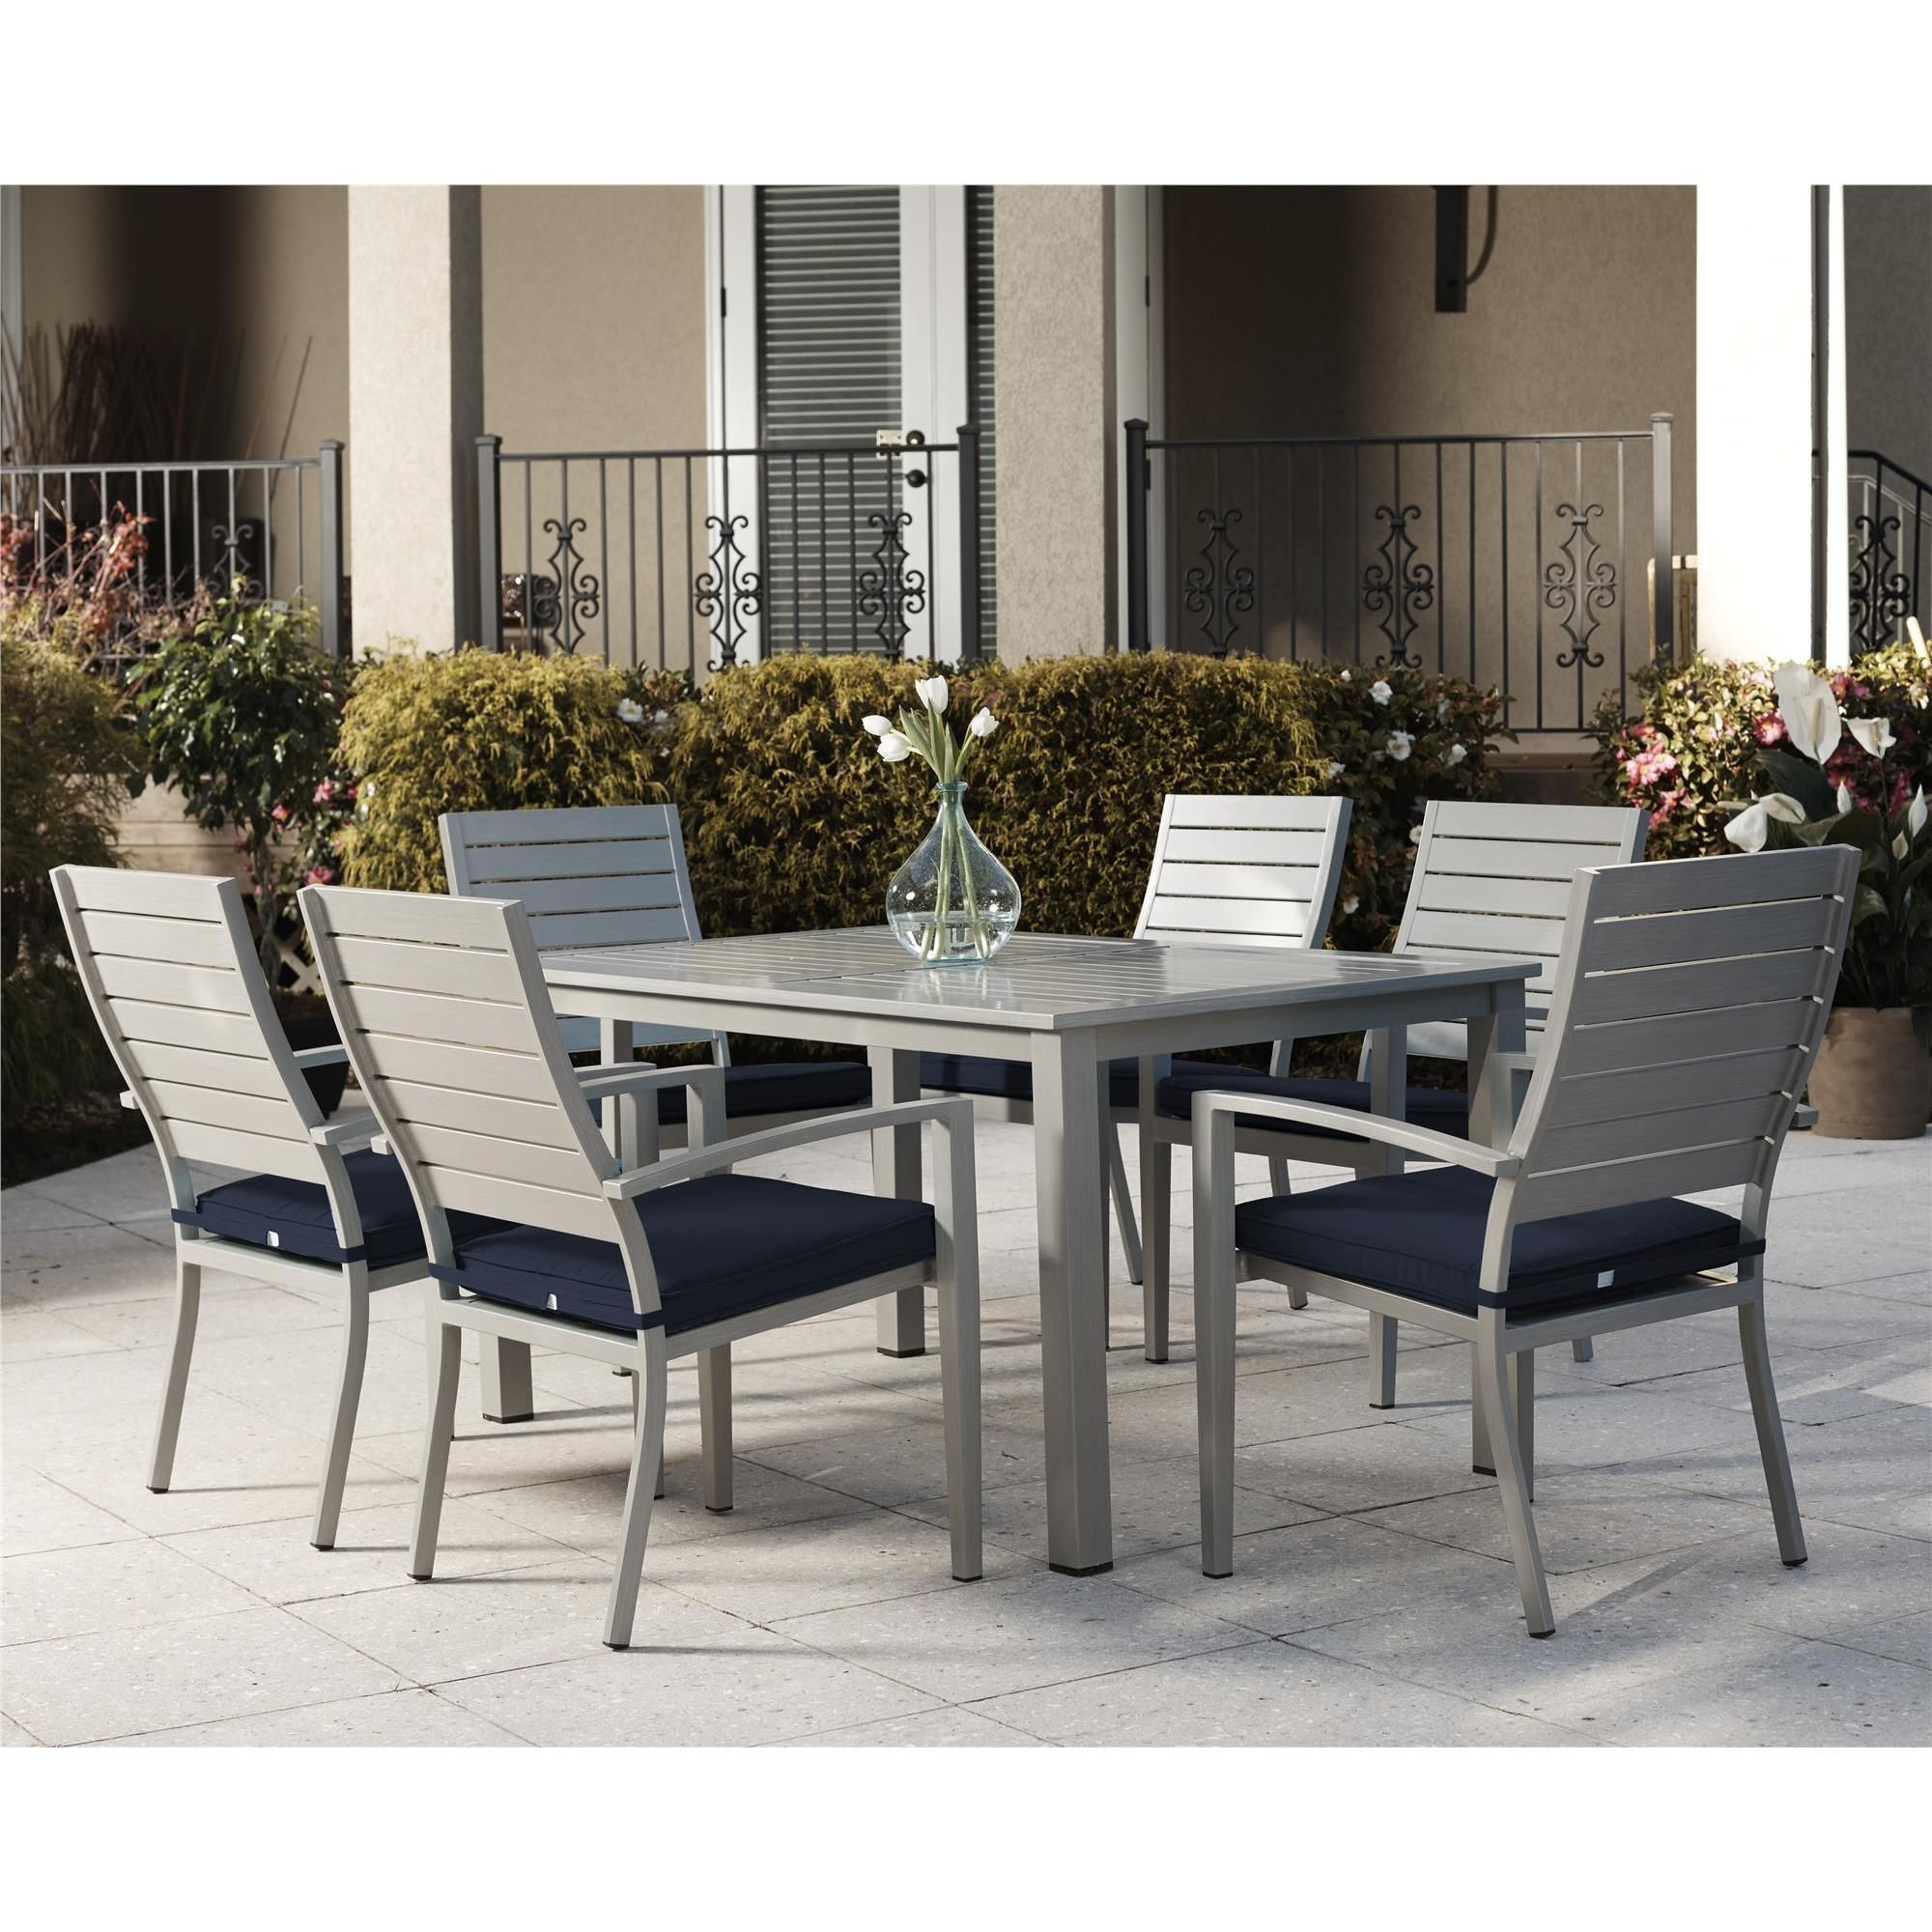 Cosco Outdoor Living 7 Piece Blue Veil Brushed Aluminum Patio Furniture Dining Set With Cushions